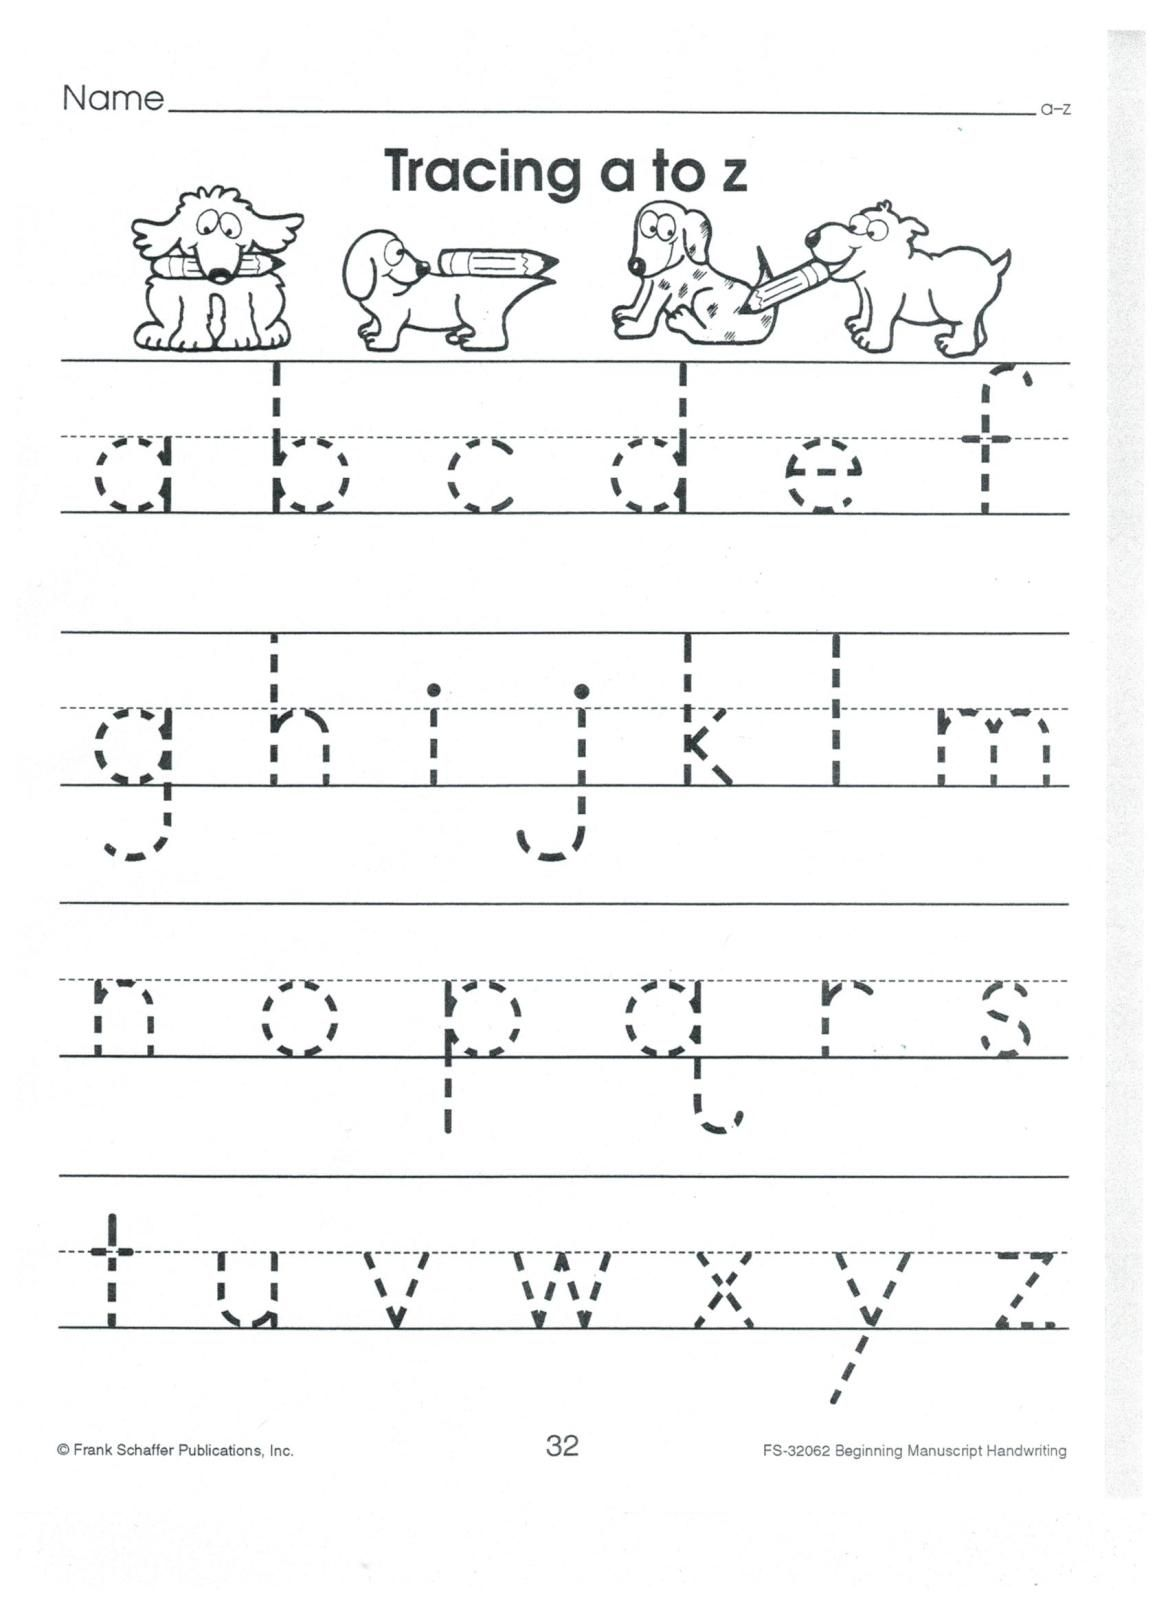 English Print Abc A To Z Lower Case 001 With Images